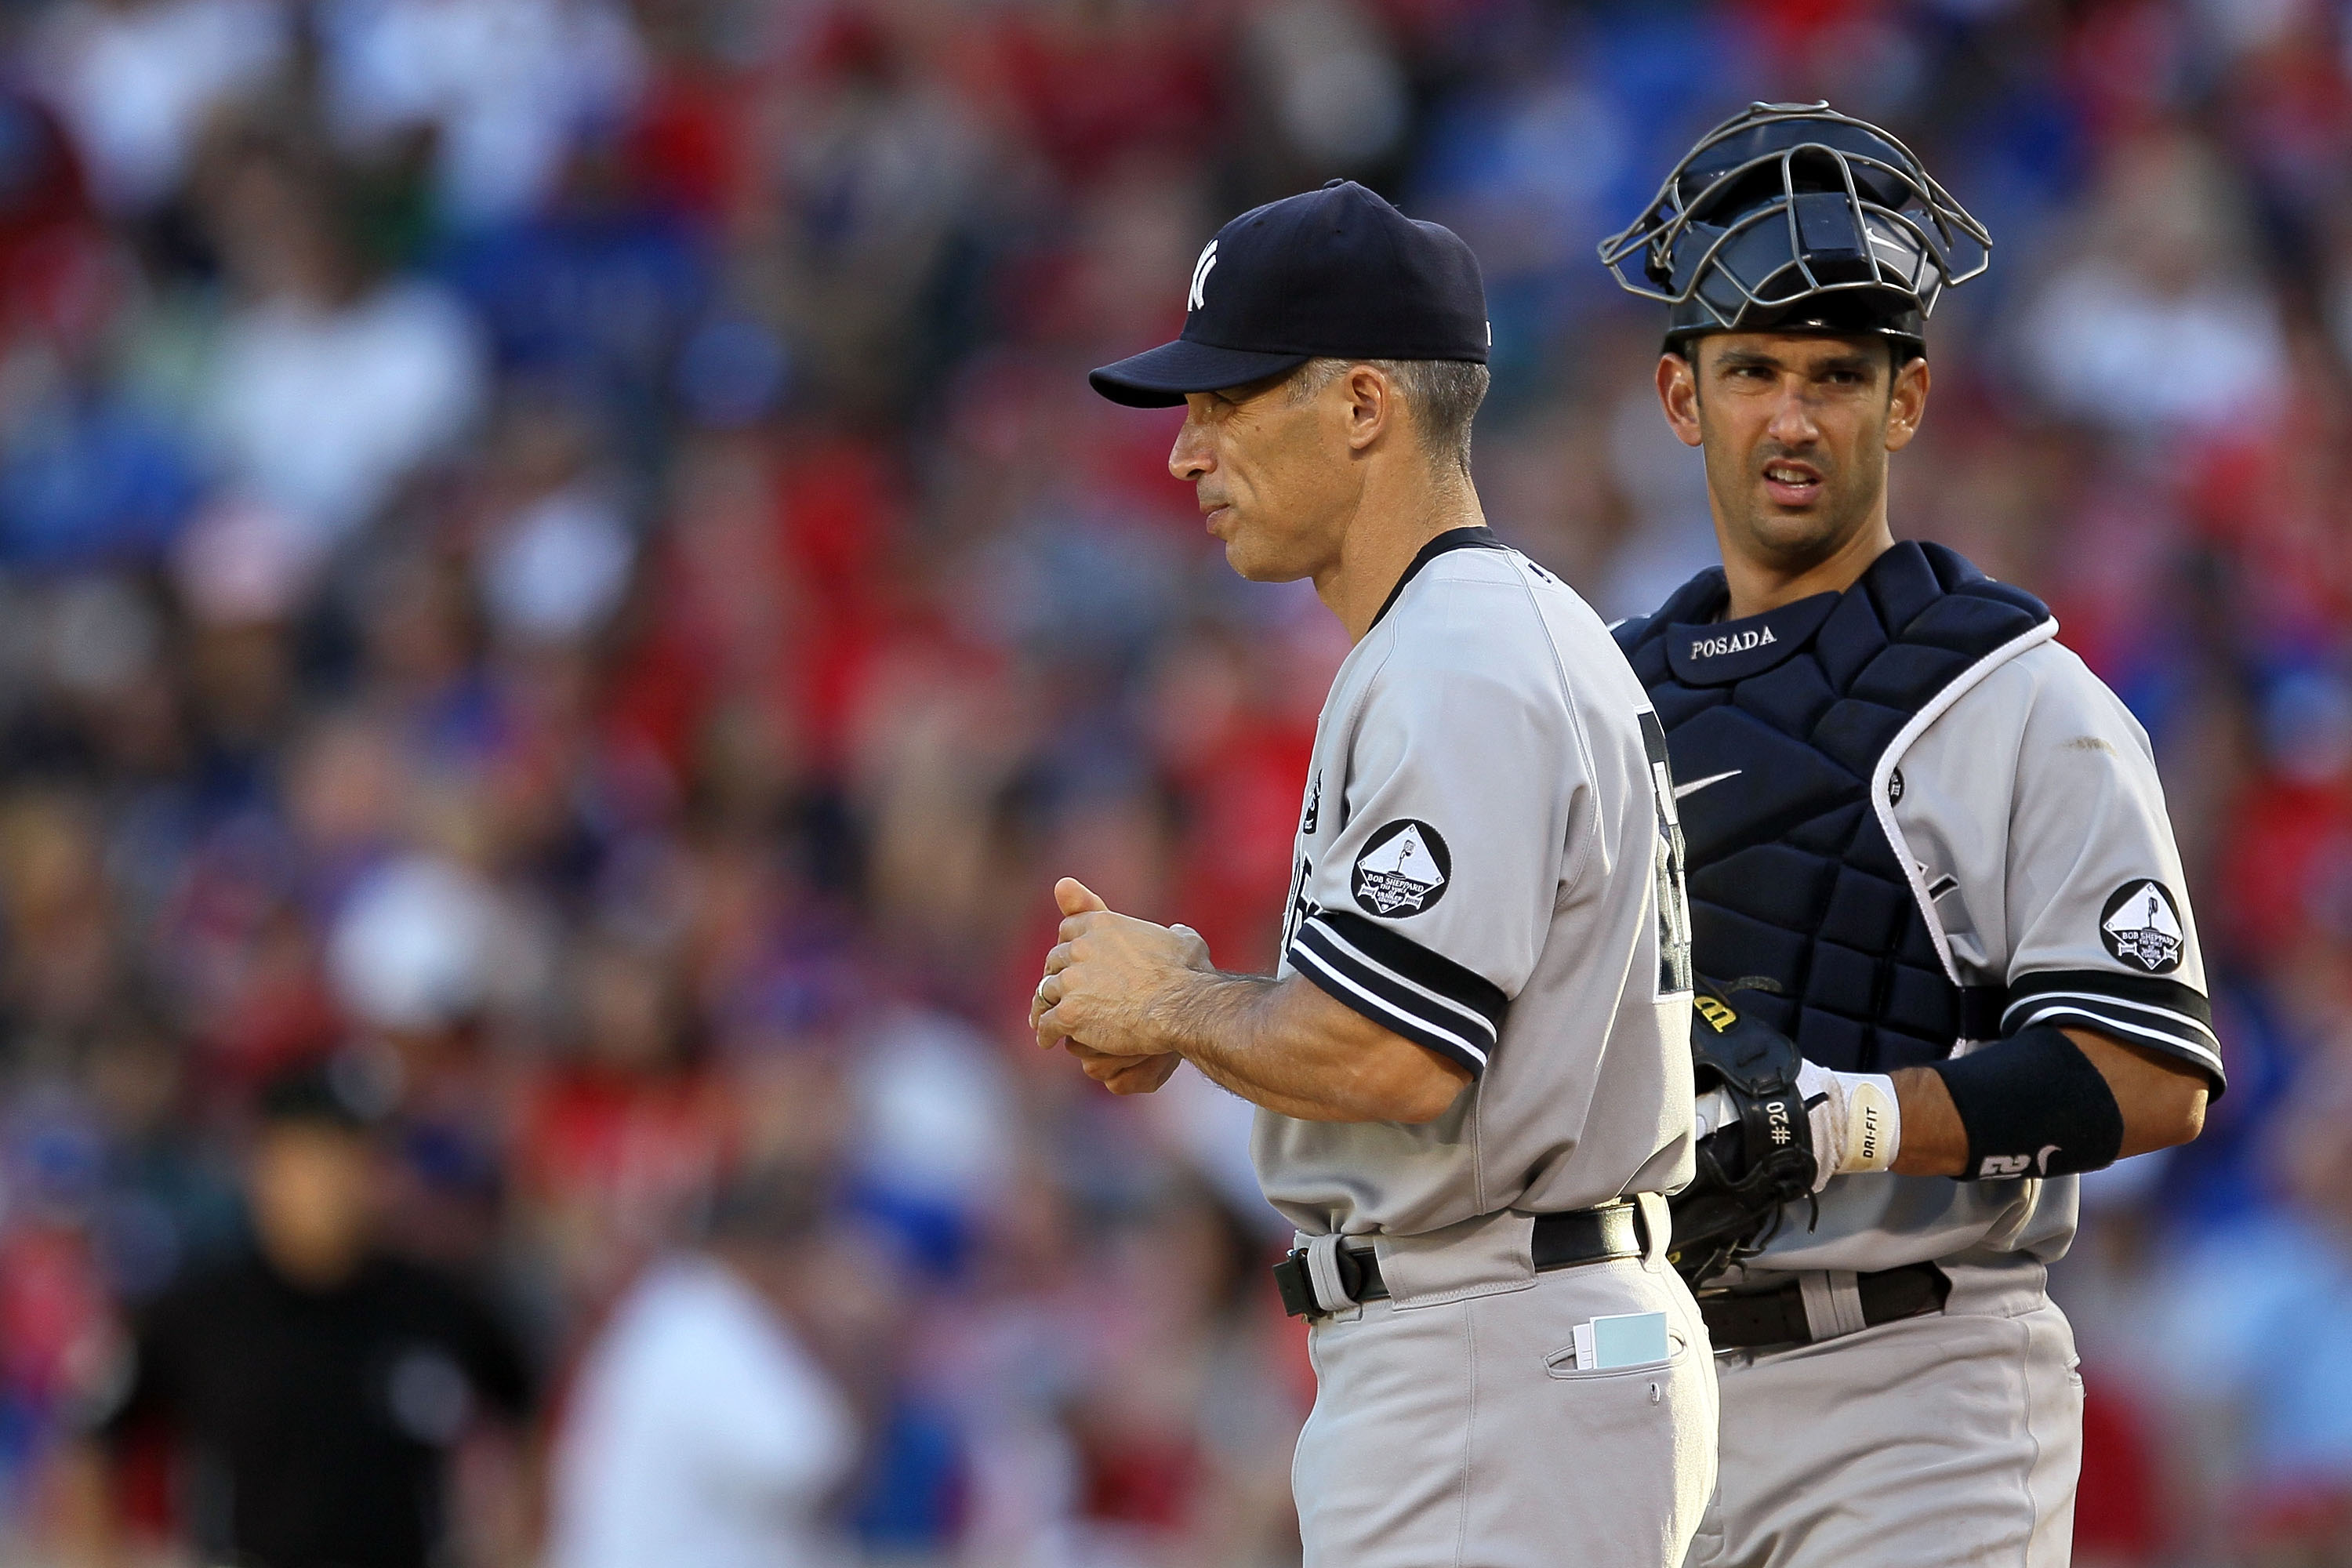 ARLINGTON, TX - OCTOBER 16:  Manager Joe Girardi and Jorge Posada #20 of the New York Yankees stand on the mound during a pitching change against the Texas Rangers in Game Two of the ALCS during the 2010 MLB Playoffs at Rangers Ballpark in Arlington on Oc